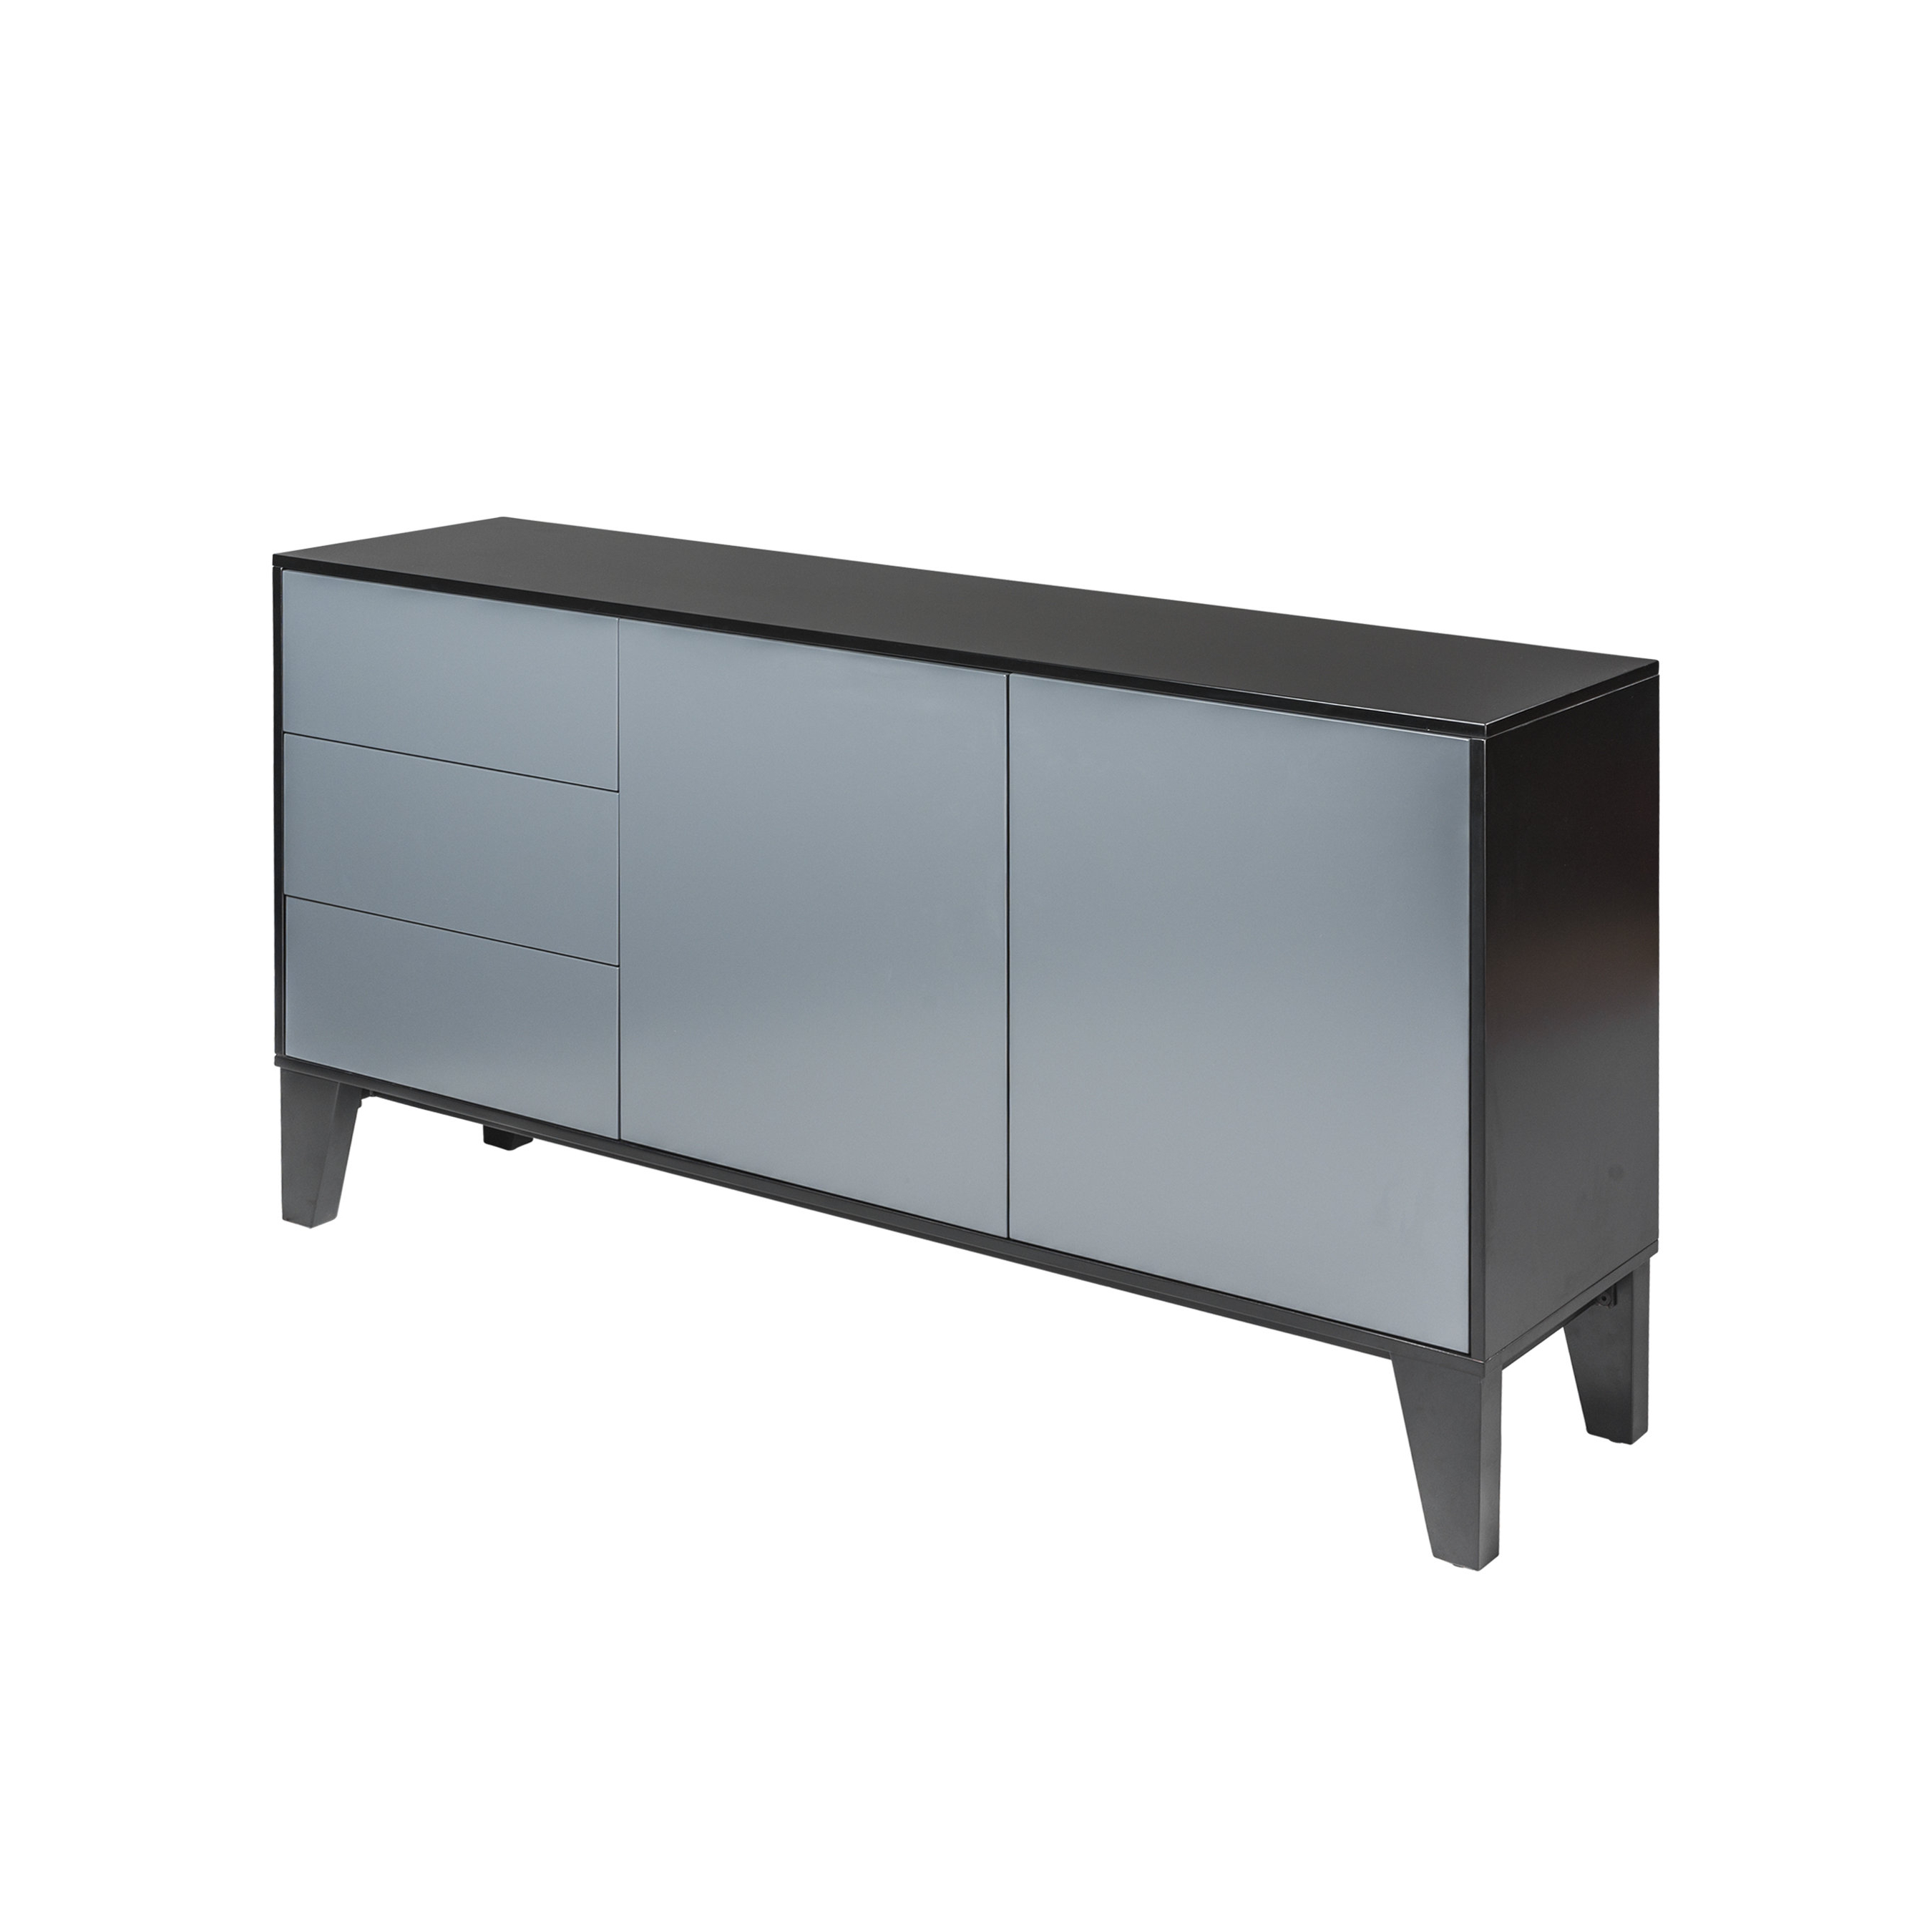 Trendy Brayden Studio Quesinberry Sideboard Intended For Stillwater Sideboards (View 20 of 20)